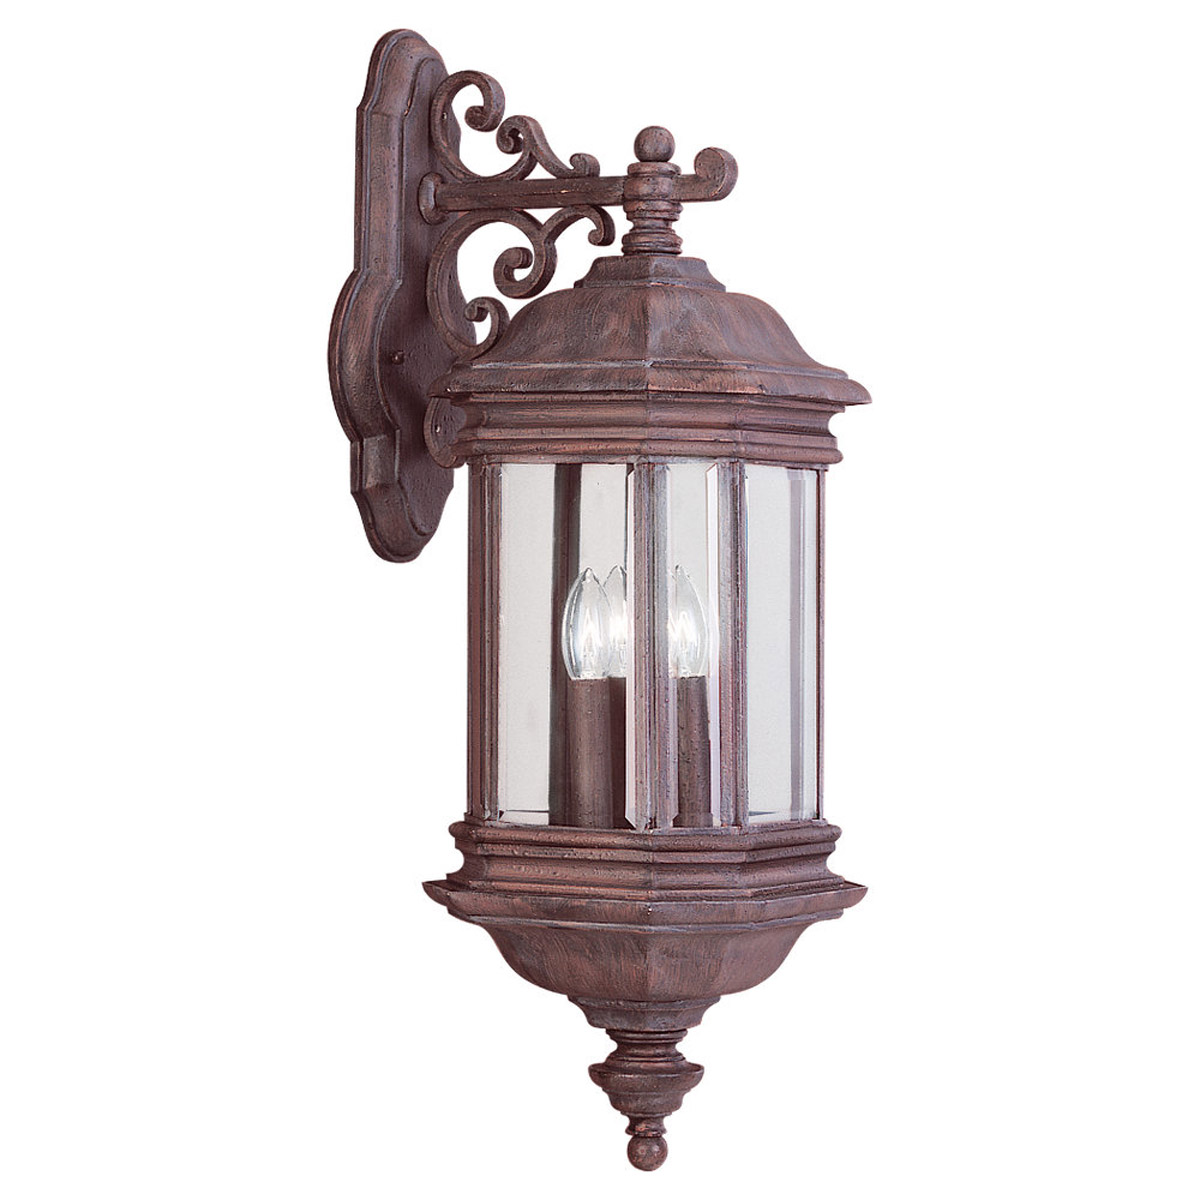 Sea Gull Lighting Hill Gate 3 Light Outdoor Wall Lantern in Textured Rust Patina 8841-08 photo